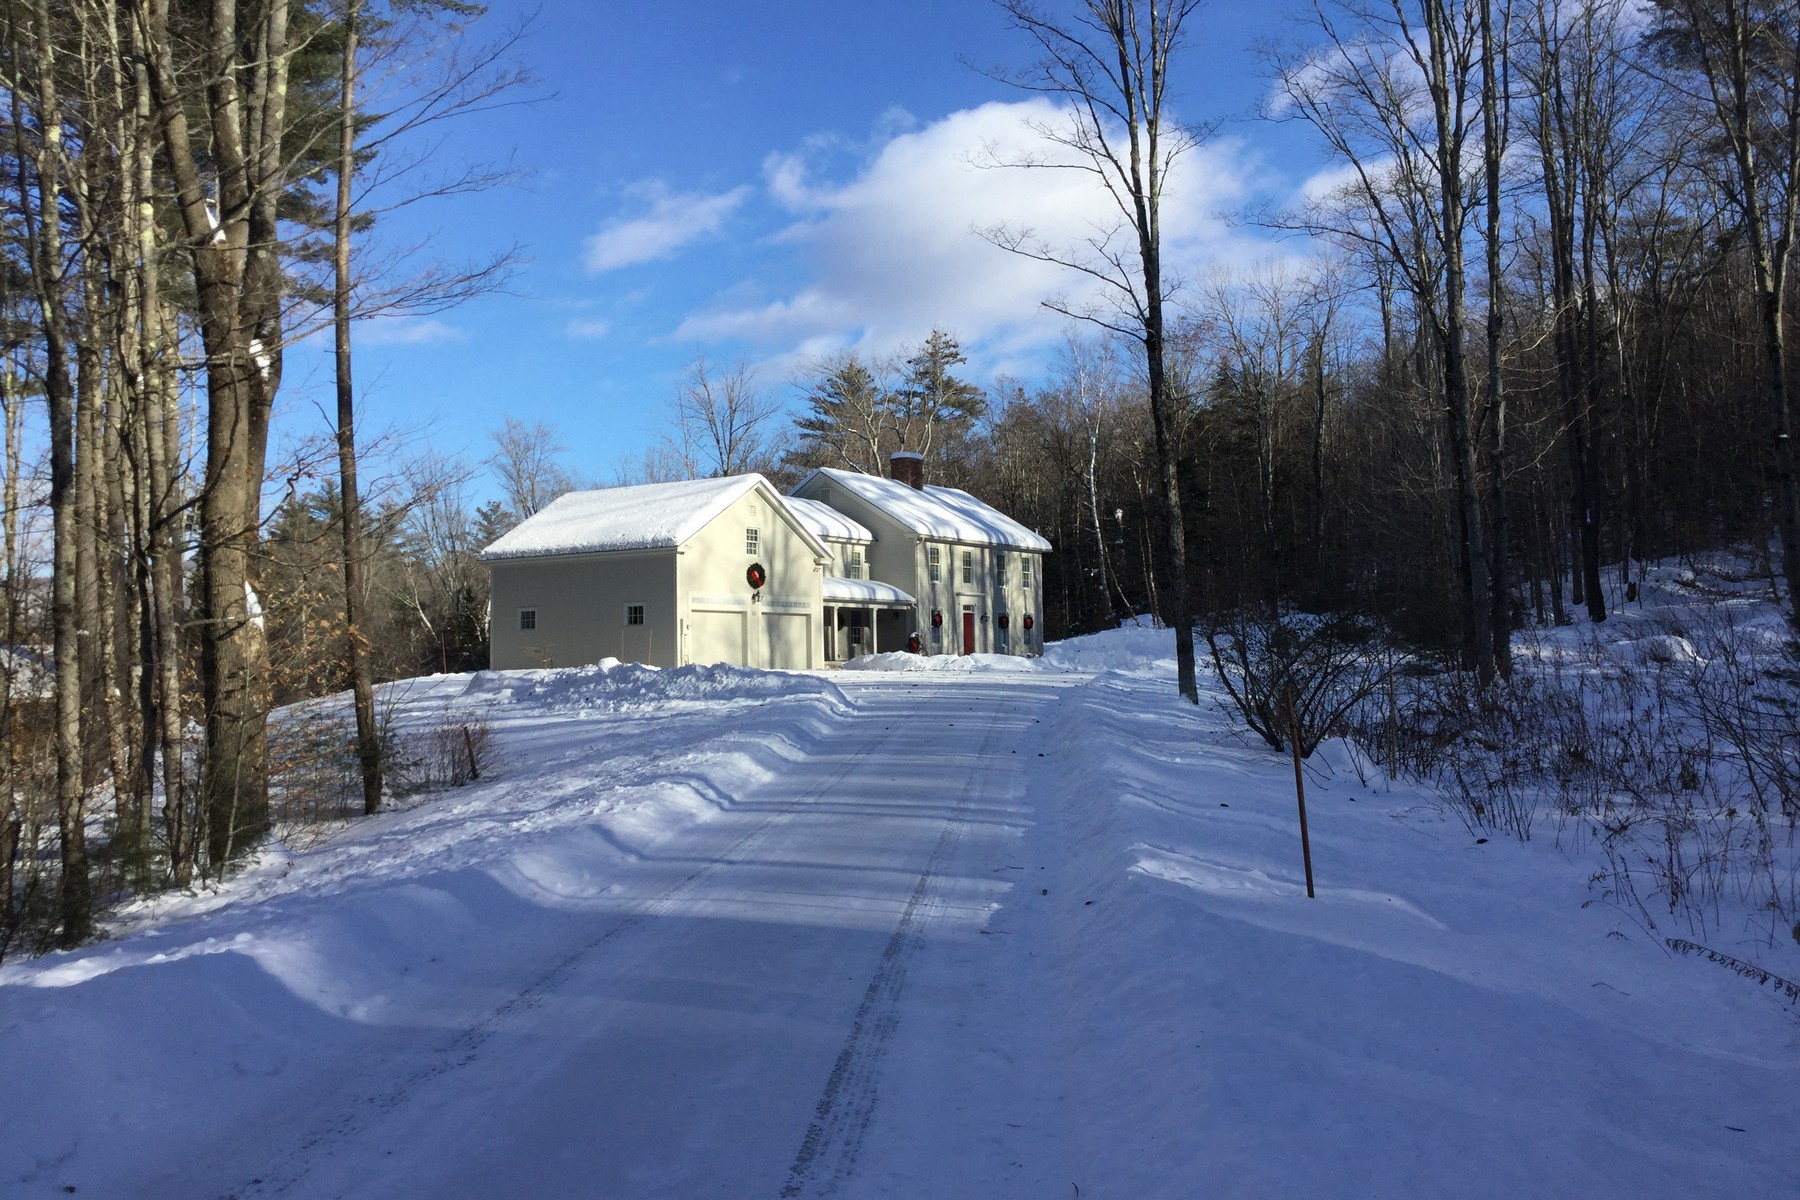 Single Family Home for Sale at Welcome to Higher Ground! 50 Markham, Weston, Vermont, 05161 United States